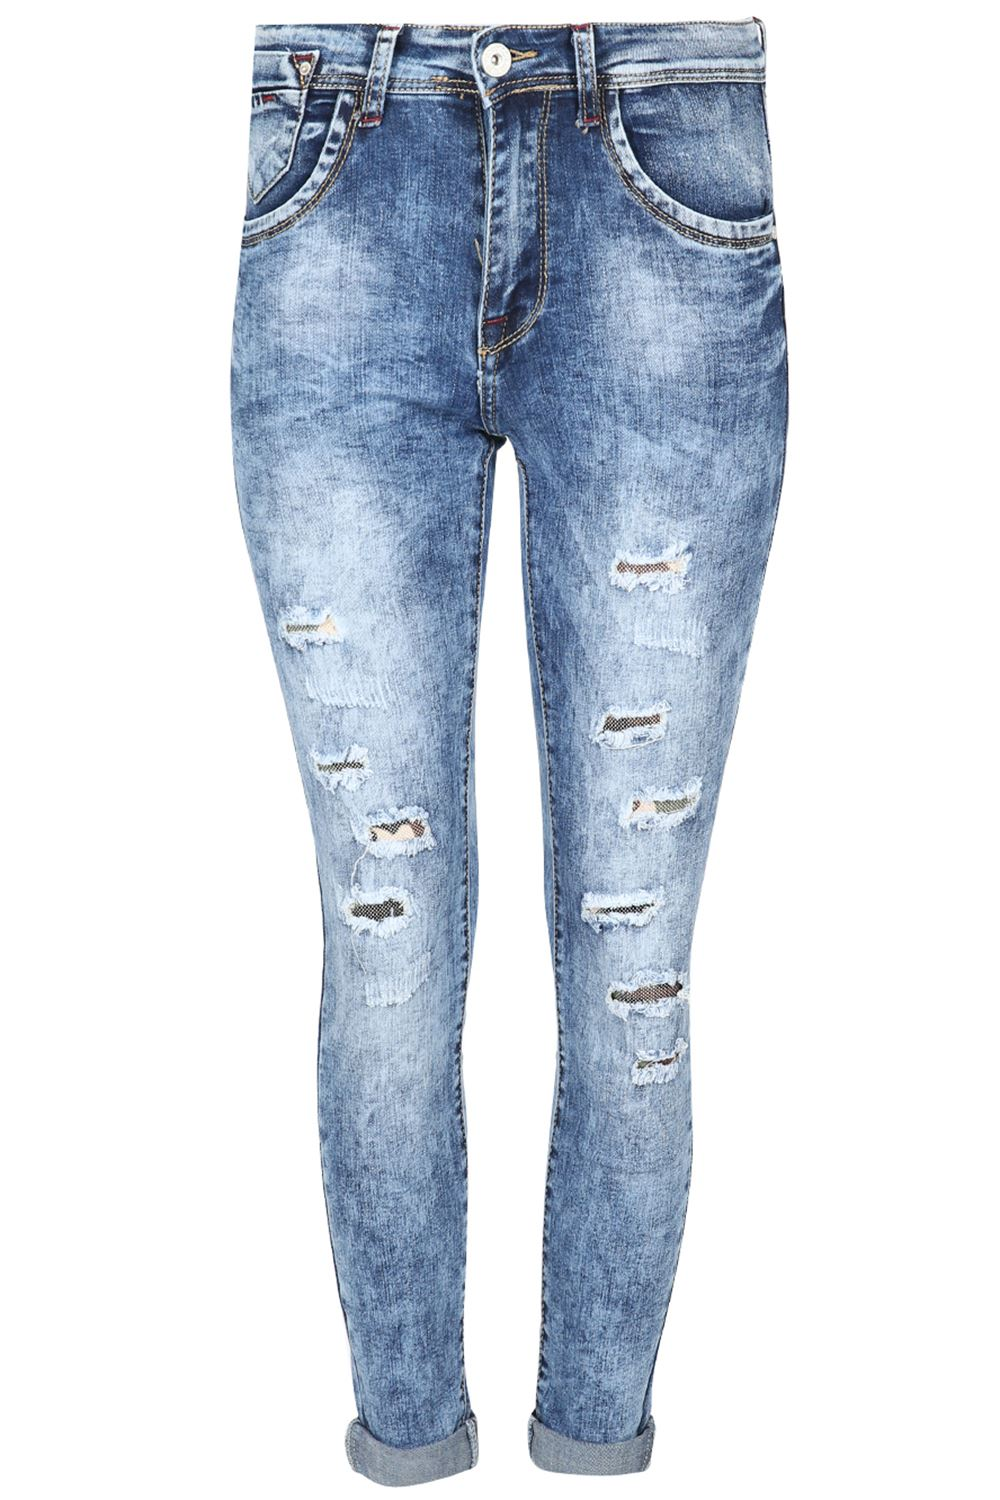 Free shipping and returns on Women's Ripped Jeans & Denim at coolzloadwok.ga